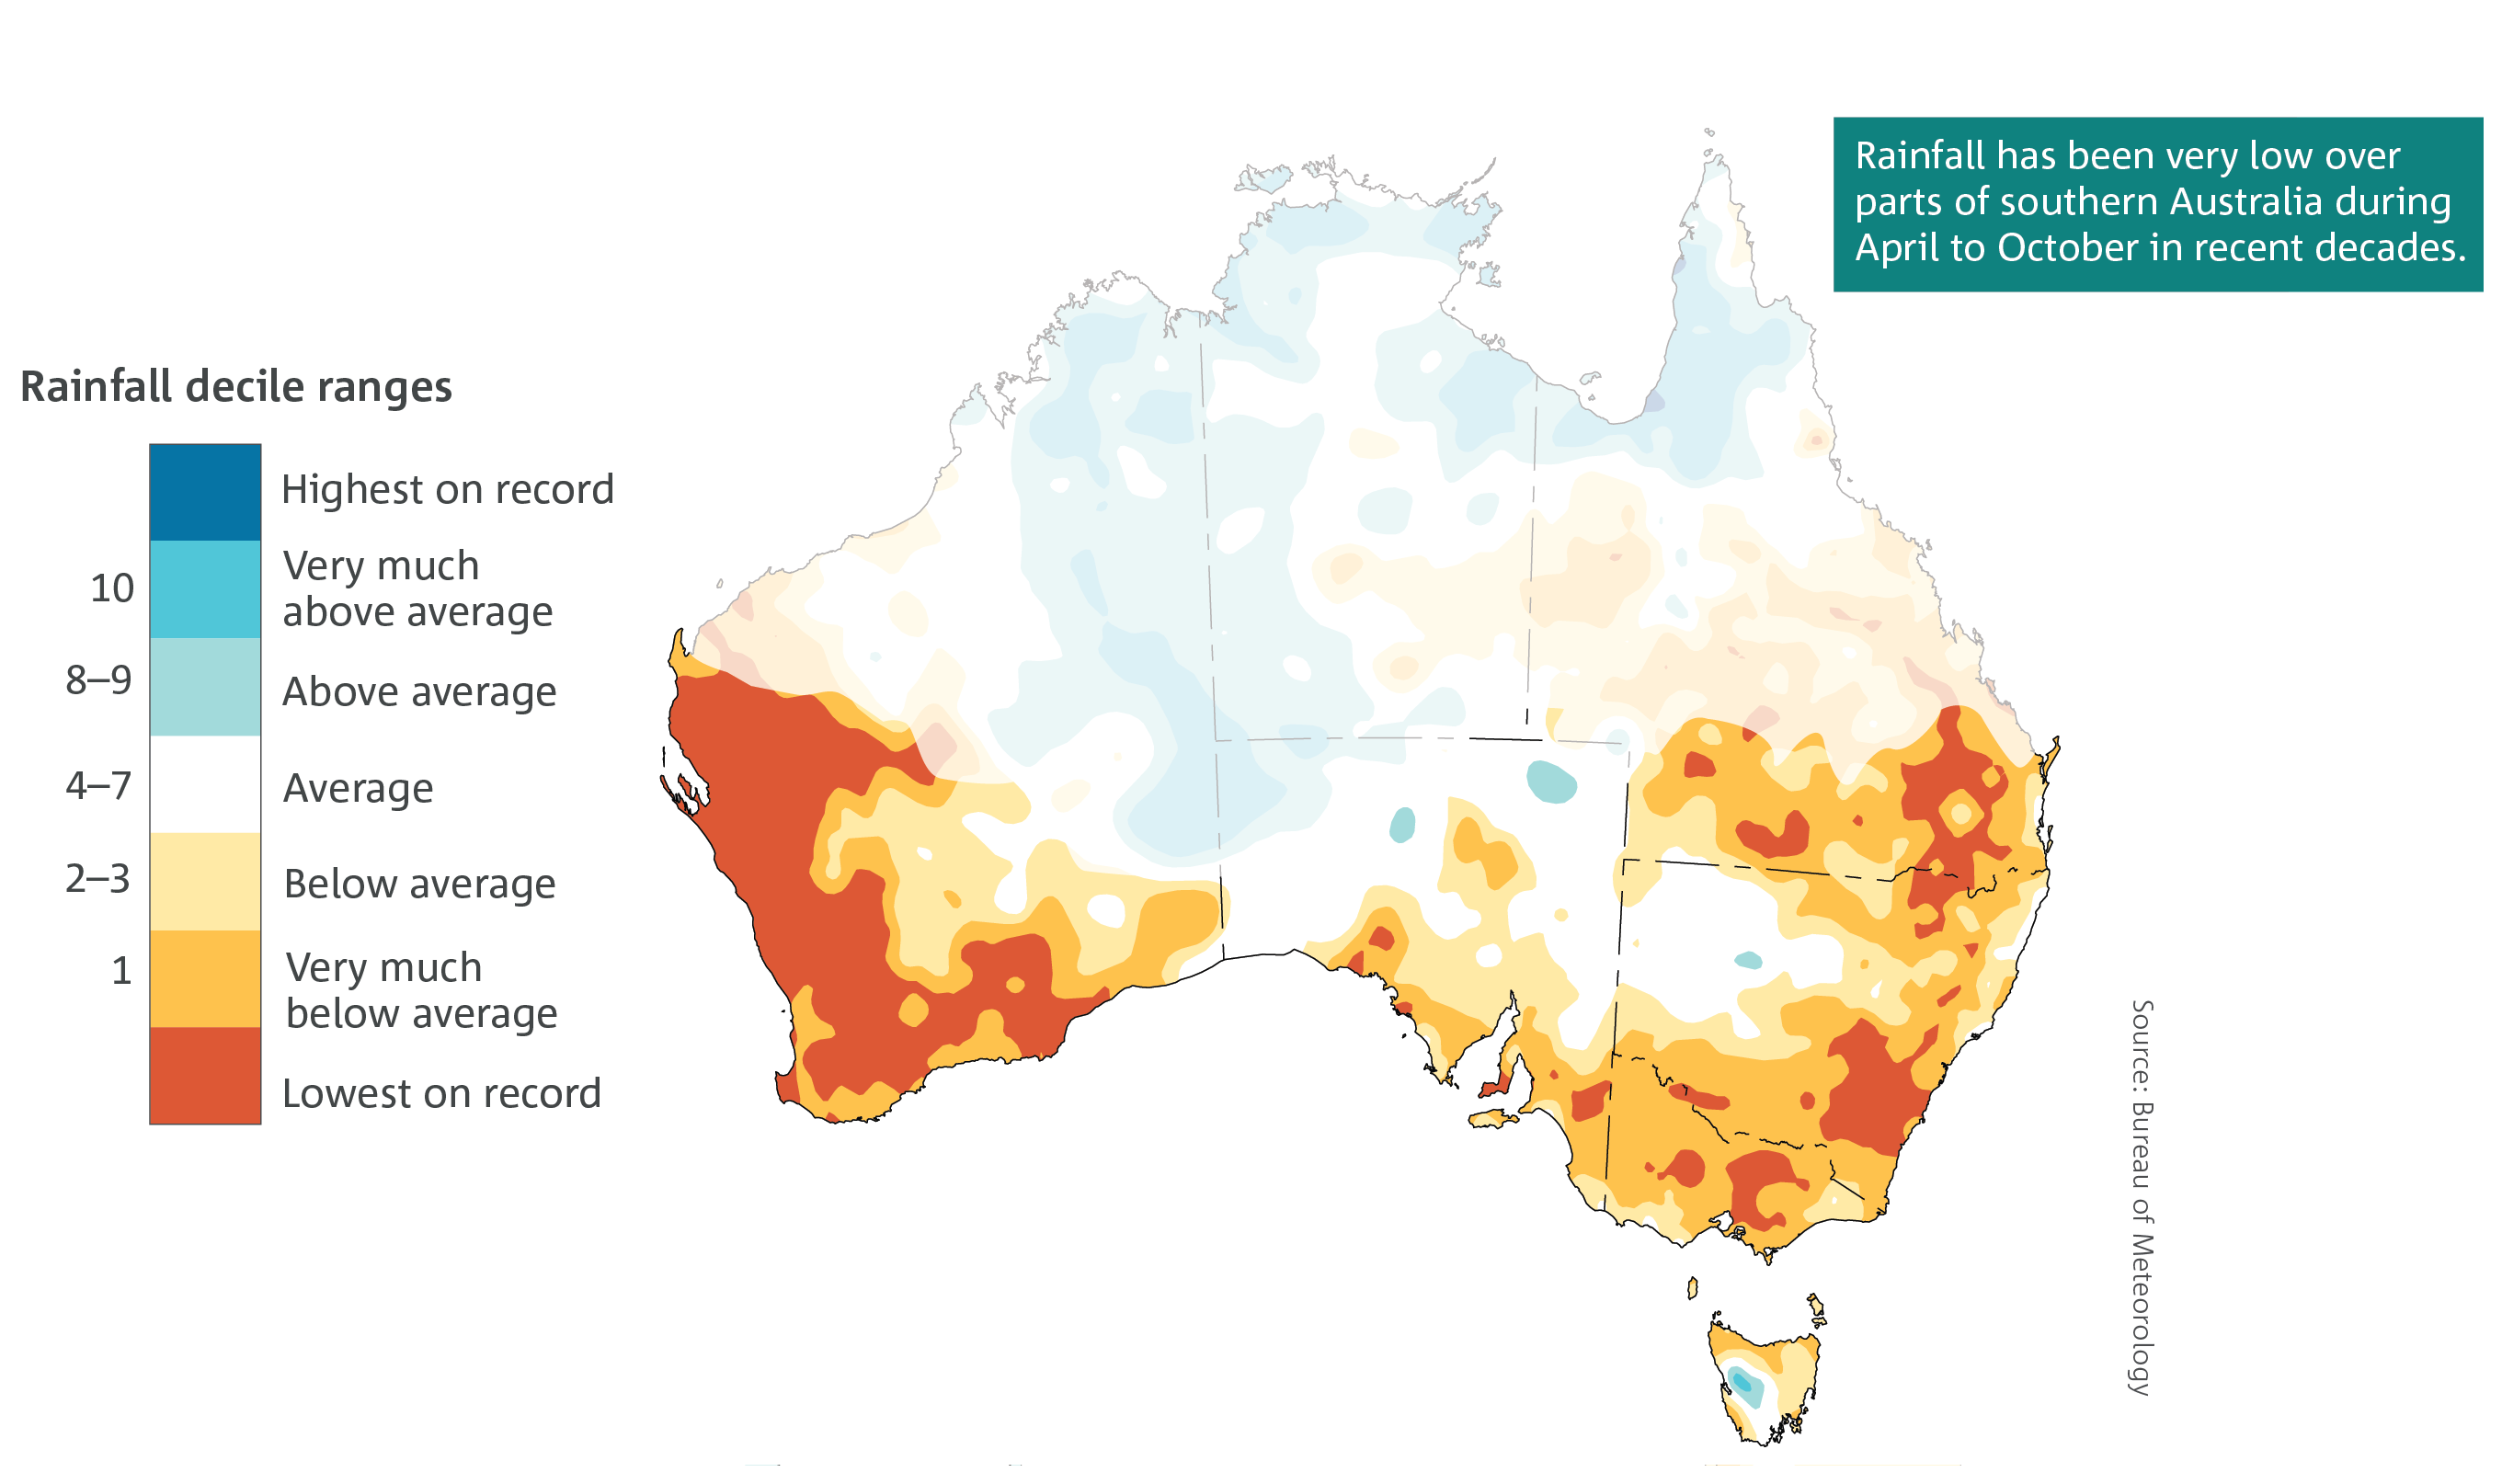 April to October rainfall deciles for the last 20 years (1999–2018). A decile map shows where rainfall is above average, average or below average for the recent period, in comparison with the entire rainfall record from 1900.